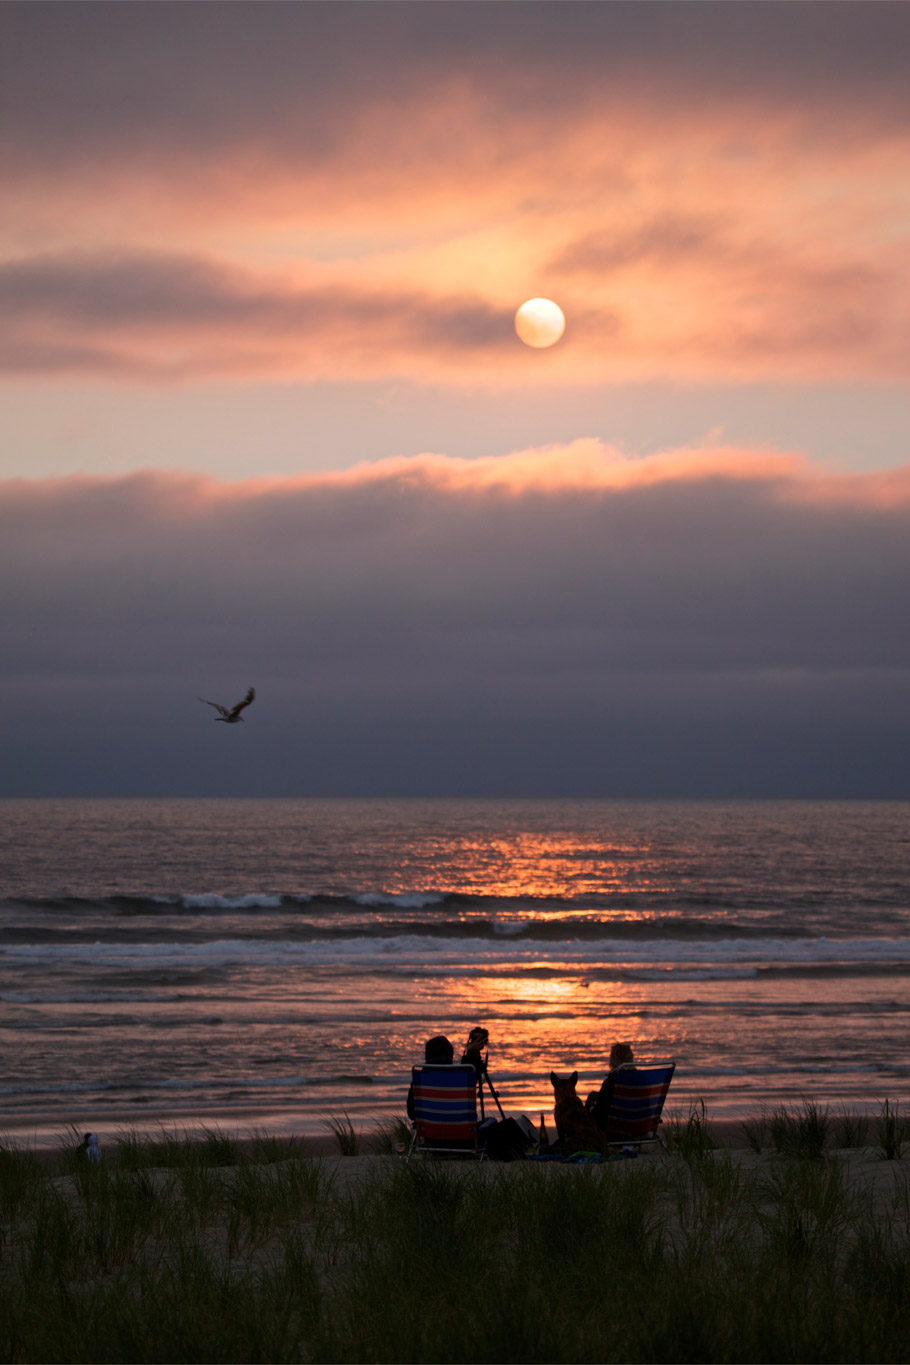 Enjoying the sunset in Seaside, Oregon